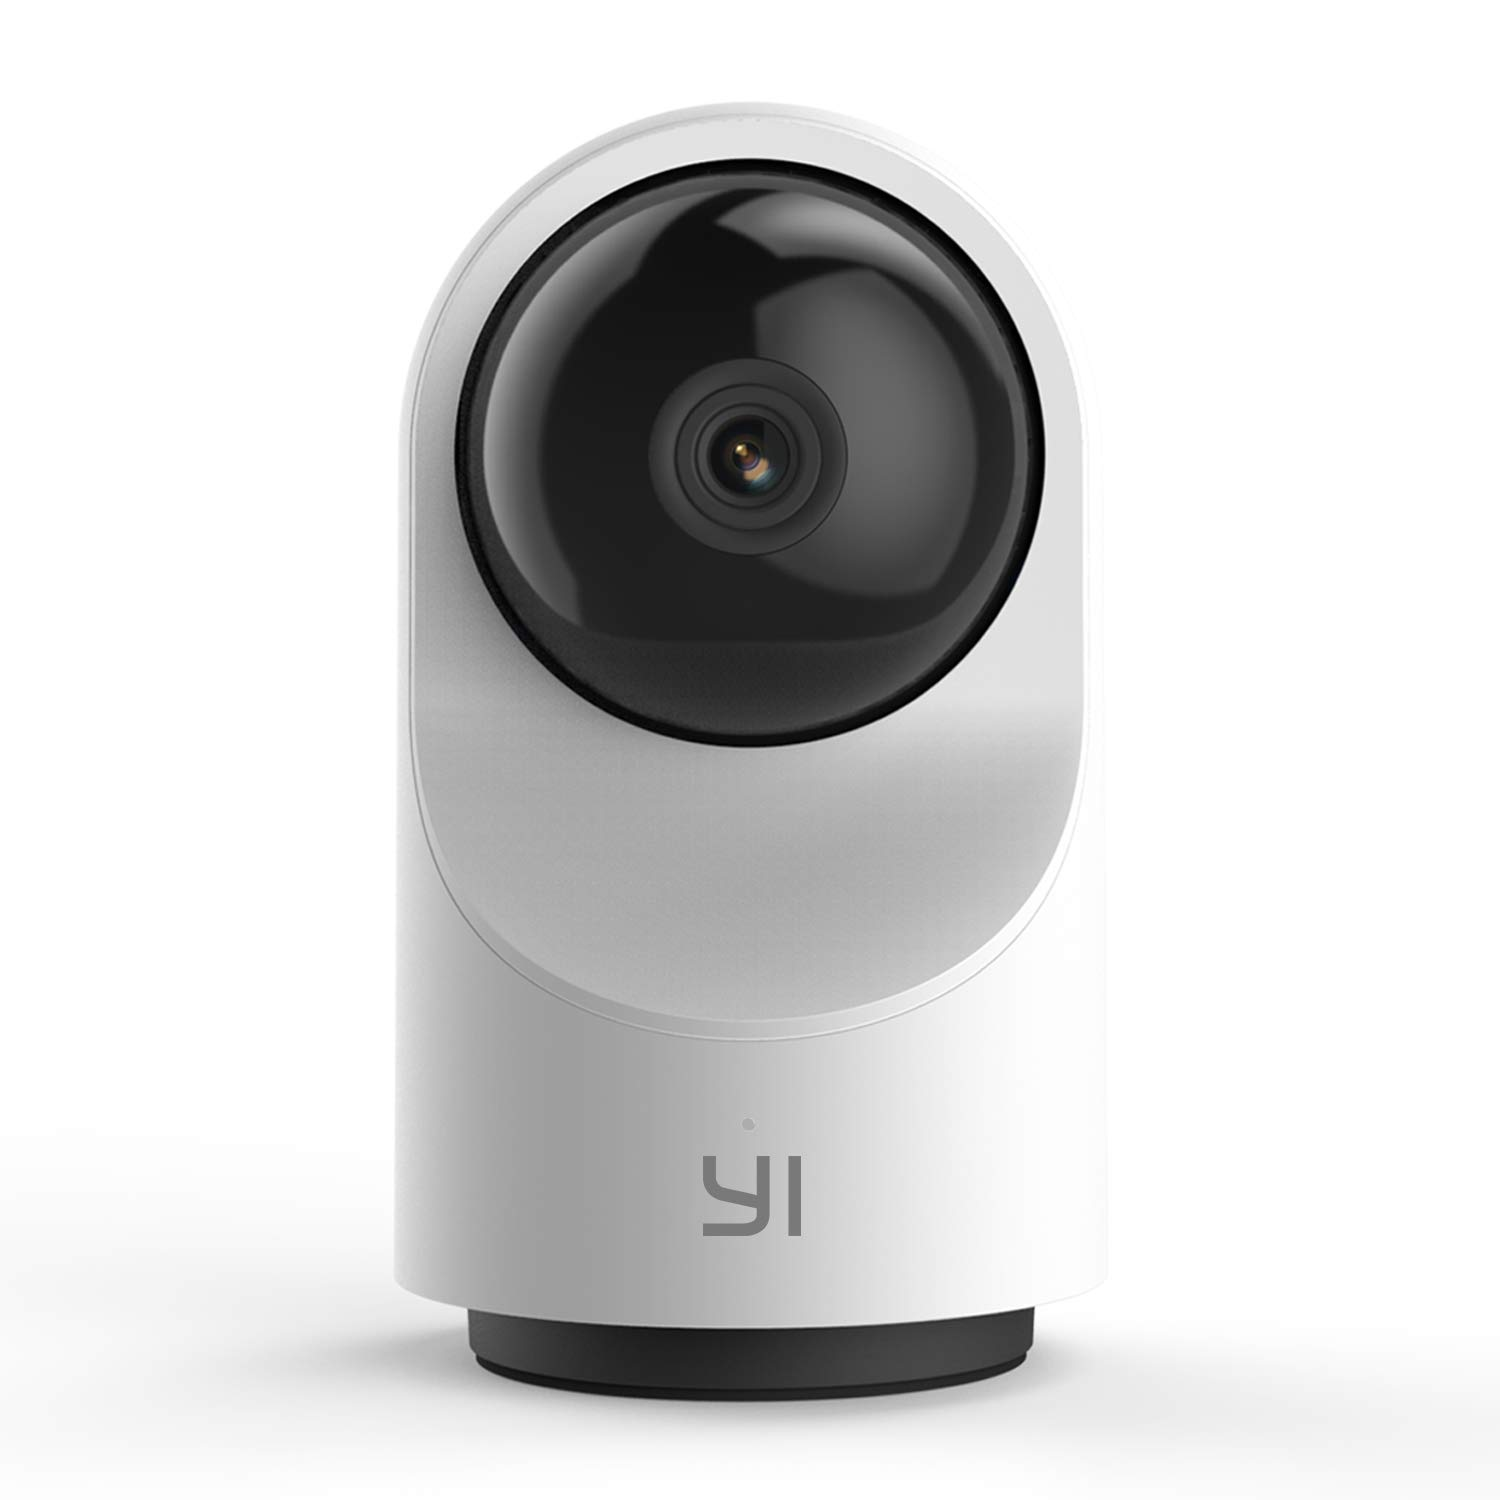 YI Smart Dome Camera X, AI-Powered 1080p WiFi IP Home Security System with Human Detection, Sound Analytics, Image Retrieval, Time Lapse, Auto Cruise - Cloud Service Available